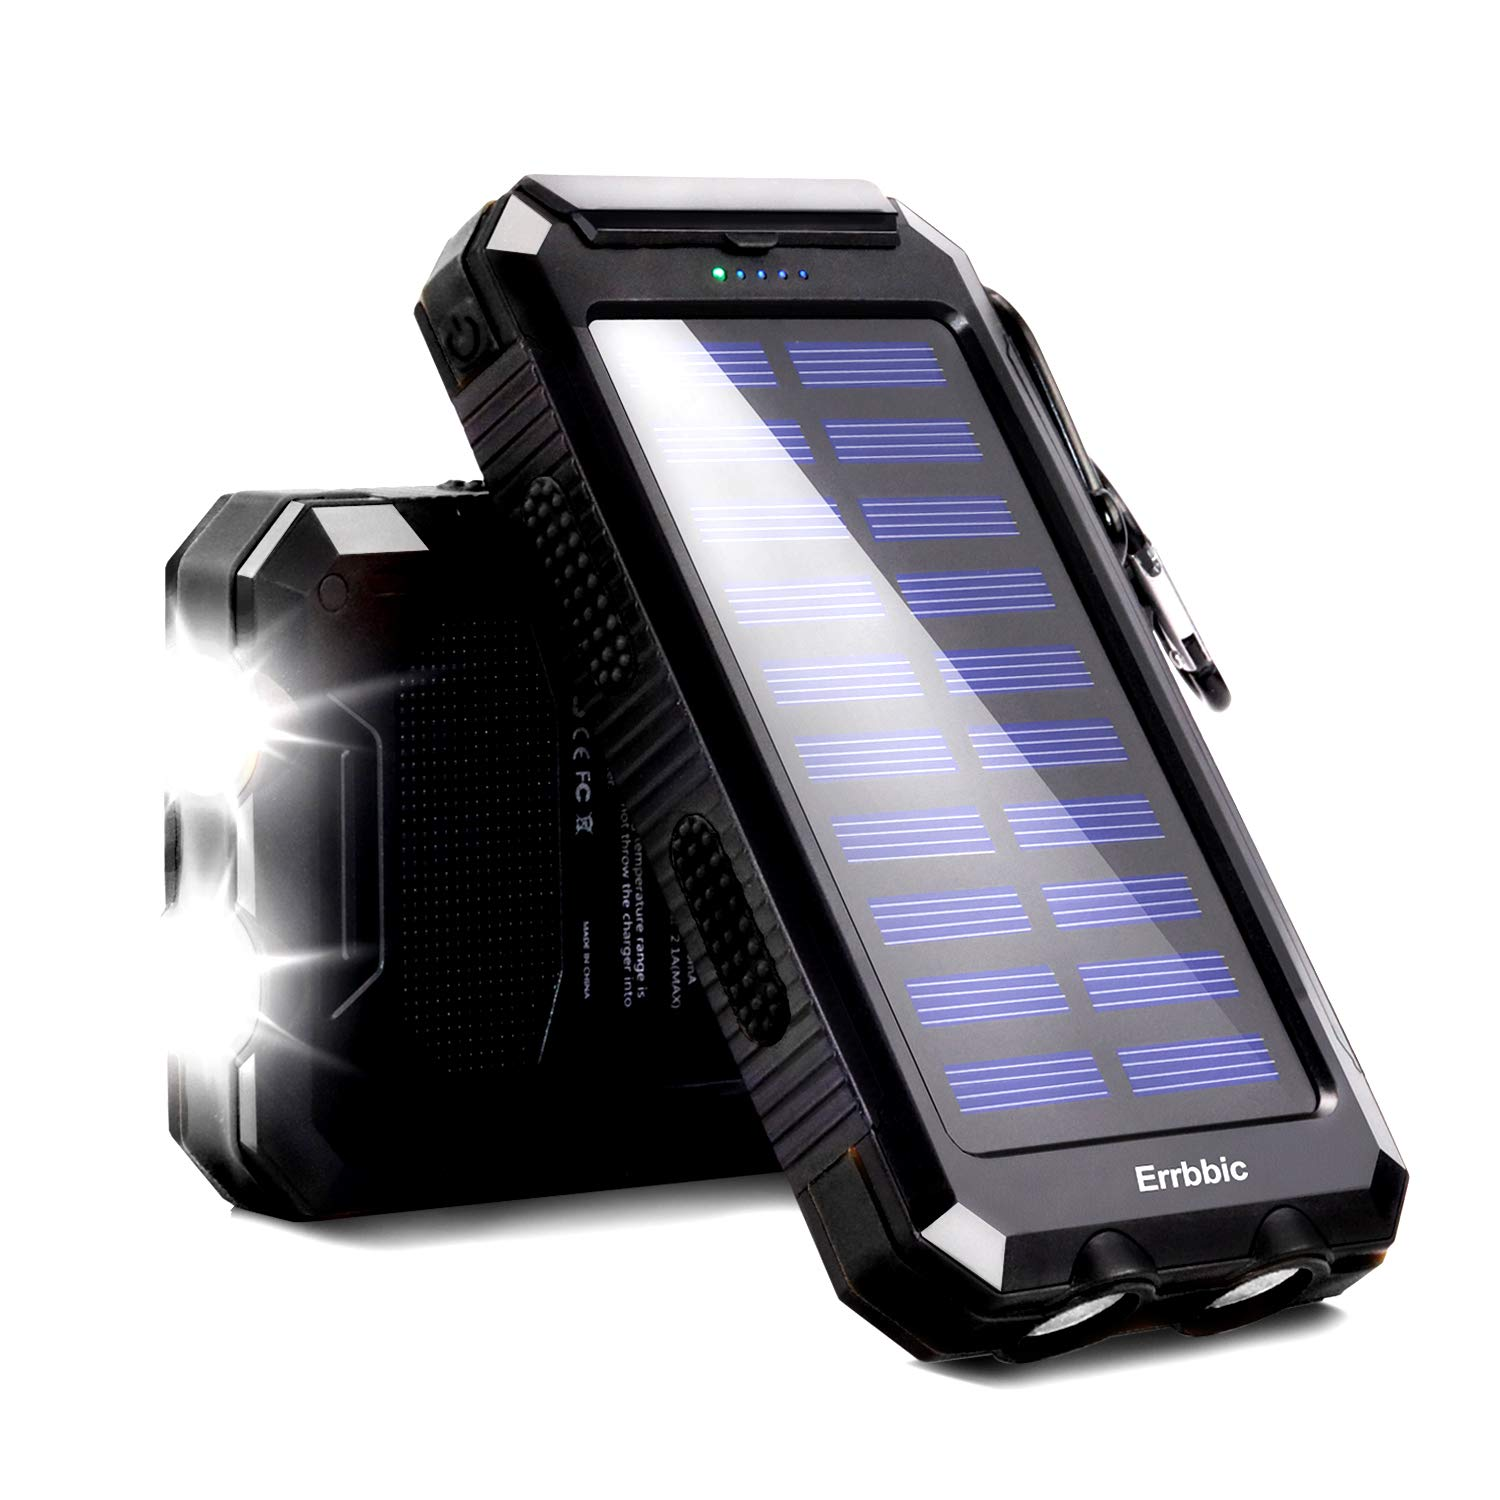 new product c15cb 7c736 Solar Power Bank 10000mAh Solar Charger Waterproof Portable External  Battery USB Charger Built in LED light with Compass for iPad iPhone Android  ...